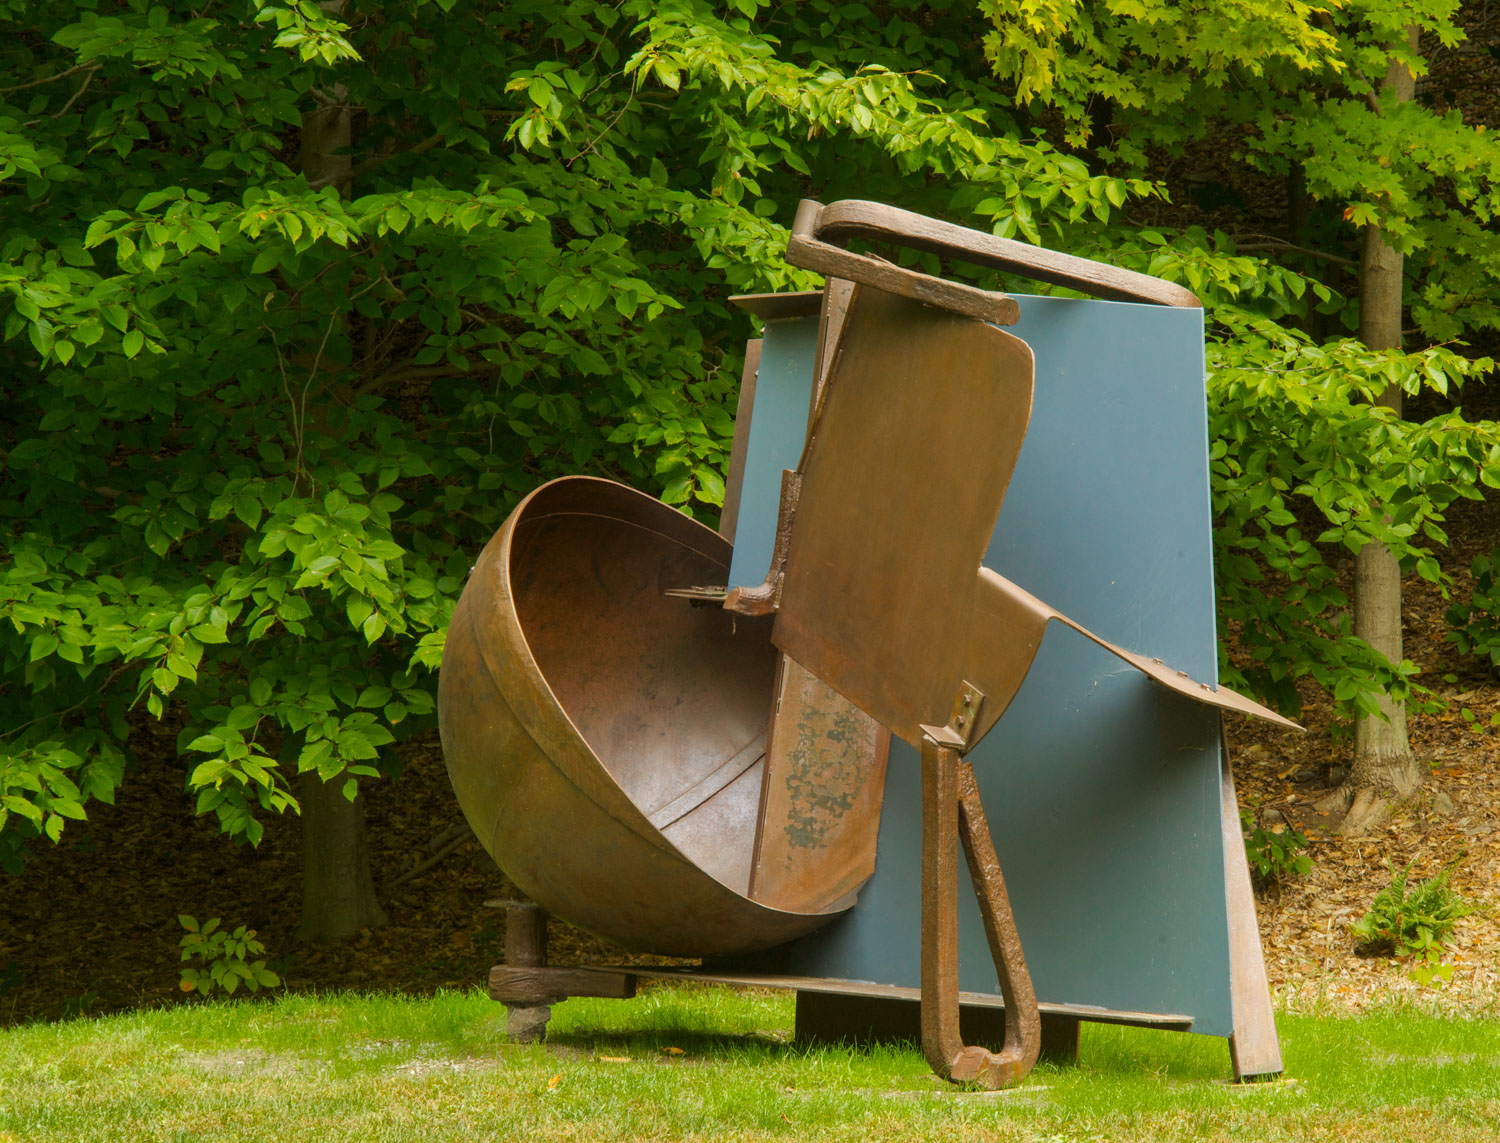 Anthony Caro, 1924-2013. Bitter Sky, 1983.Steel and painted steel. Gift of James H. Ottaway Jr., The Horace W. Goldsmith foundation, and the Ralph E. Ogden Foundation. Photograph by Jerry L. Thompson. ©Storm King Art Center, Mountainville, New York. Courtesy of Barford Sculpture Ltd.